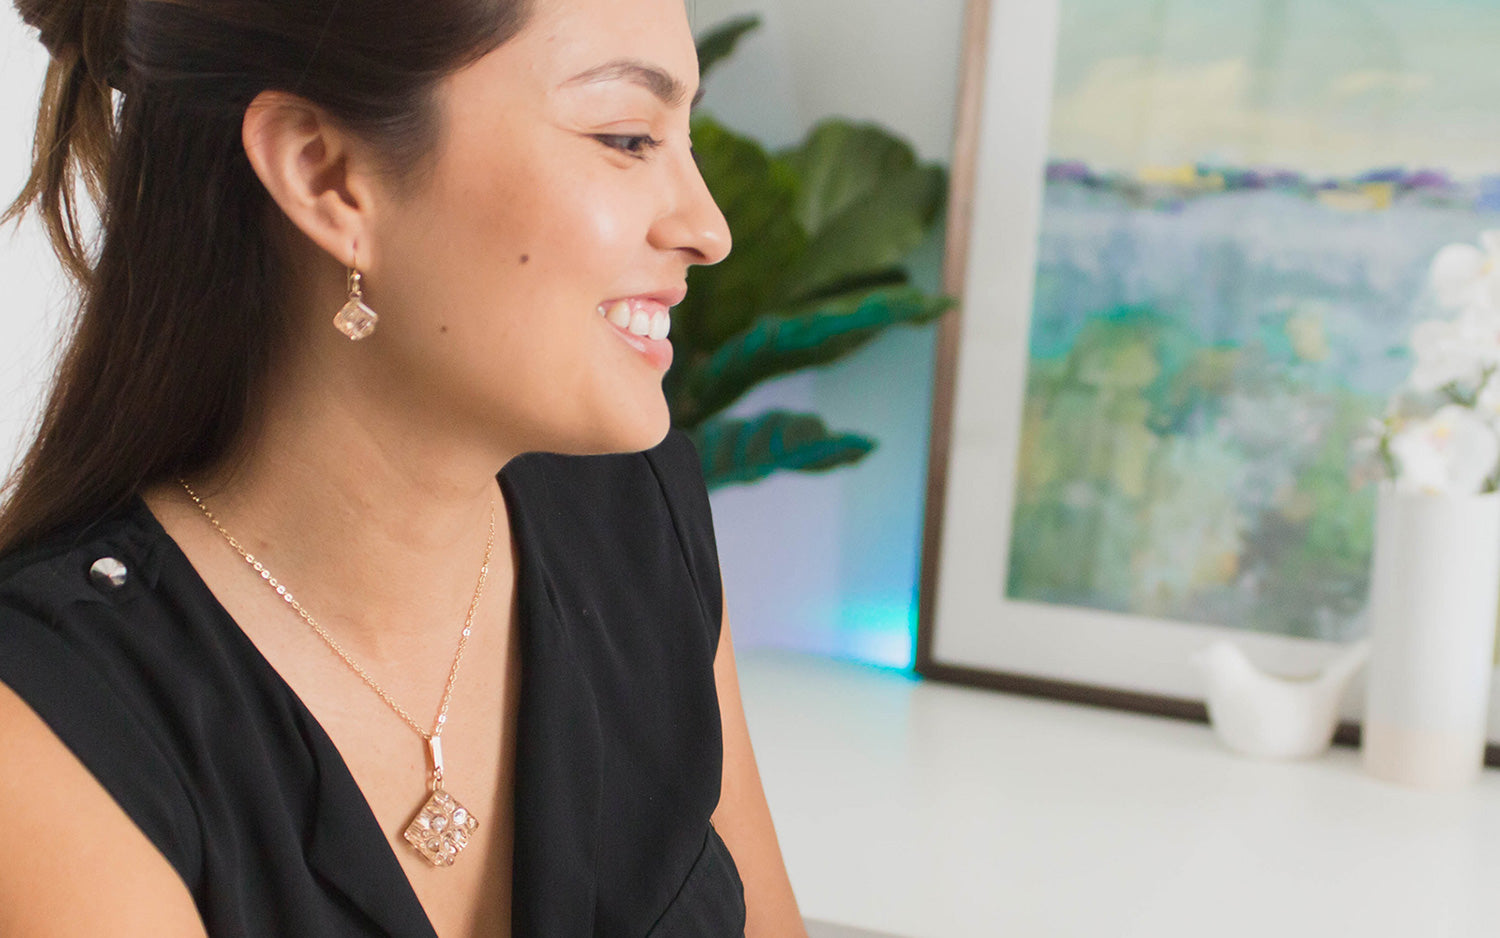 Sparkle with handmade jewelry from Tahmi. Go from office to after hours with minimalist jewelry pieces that complete your capsule wardrobe. Effortlessly accessorize your style.